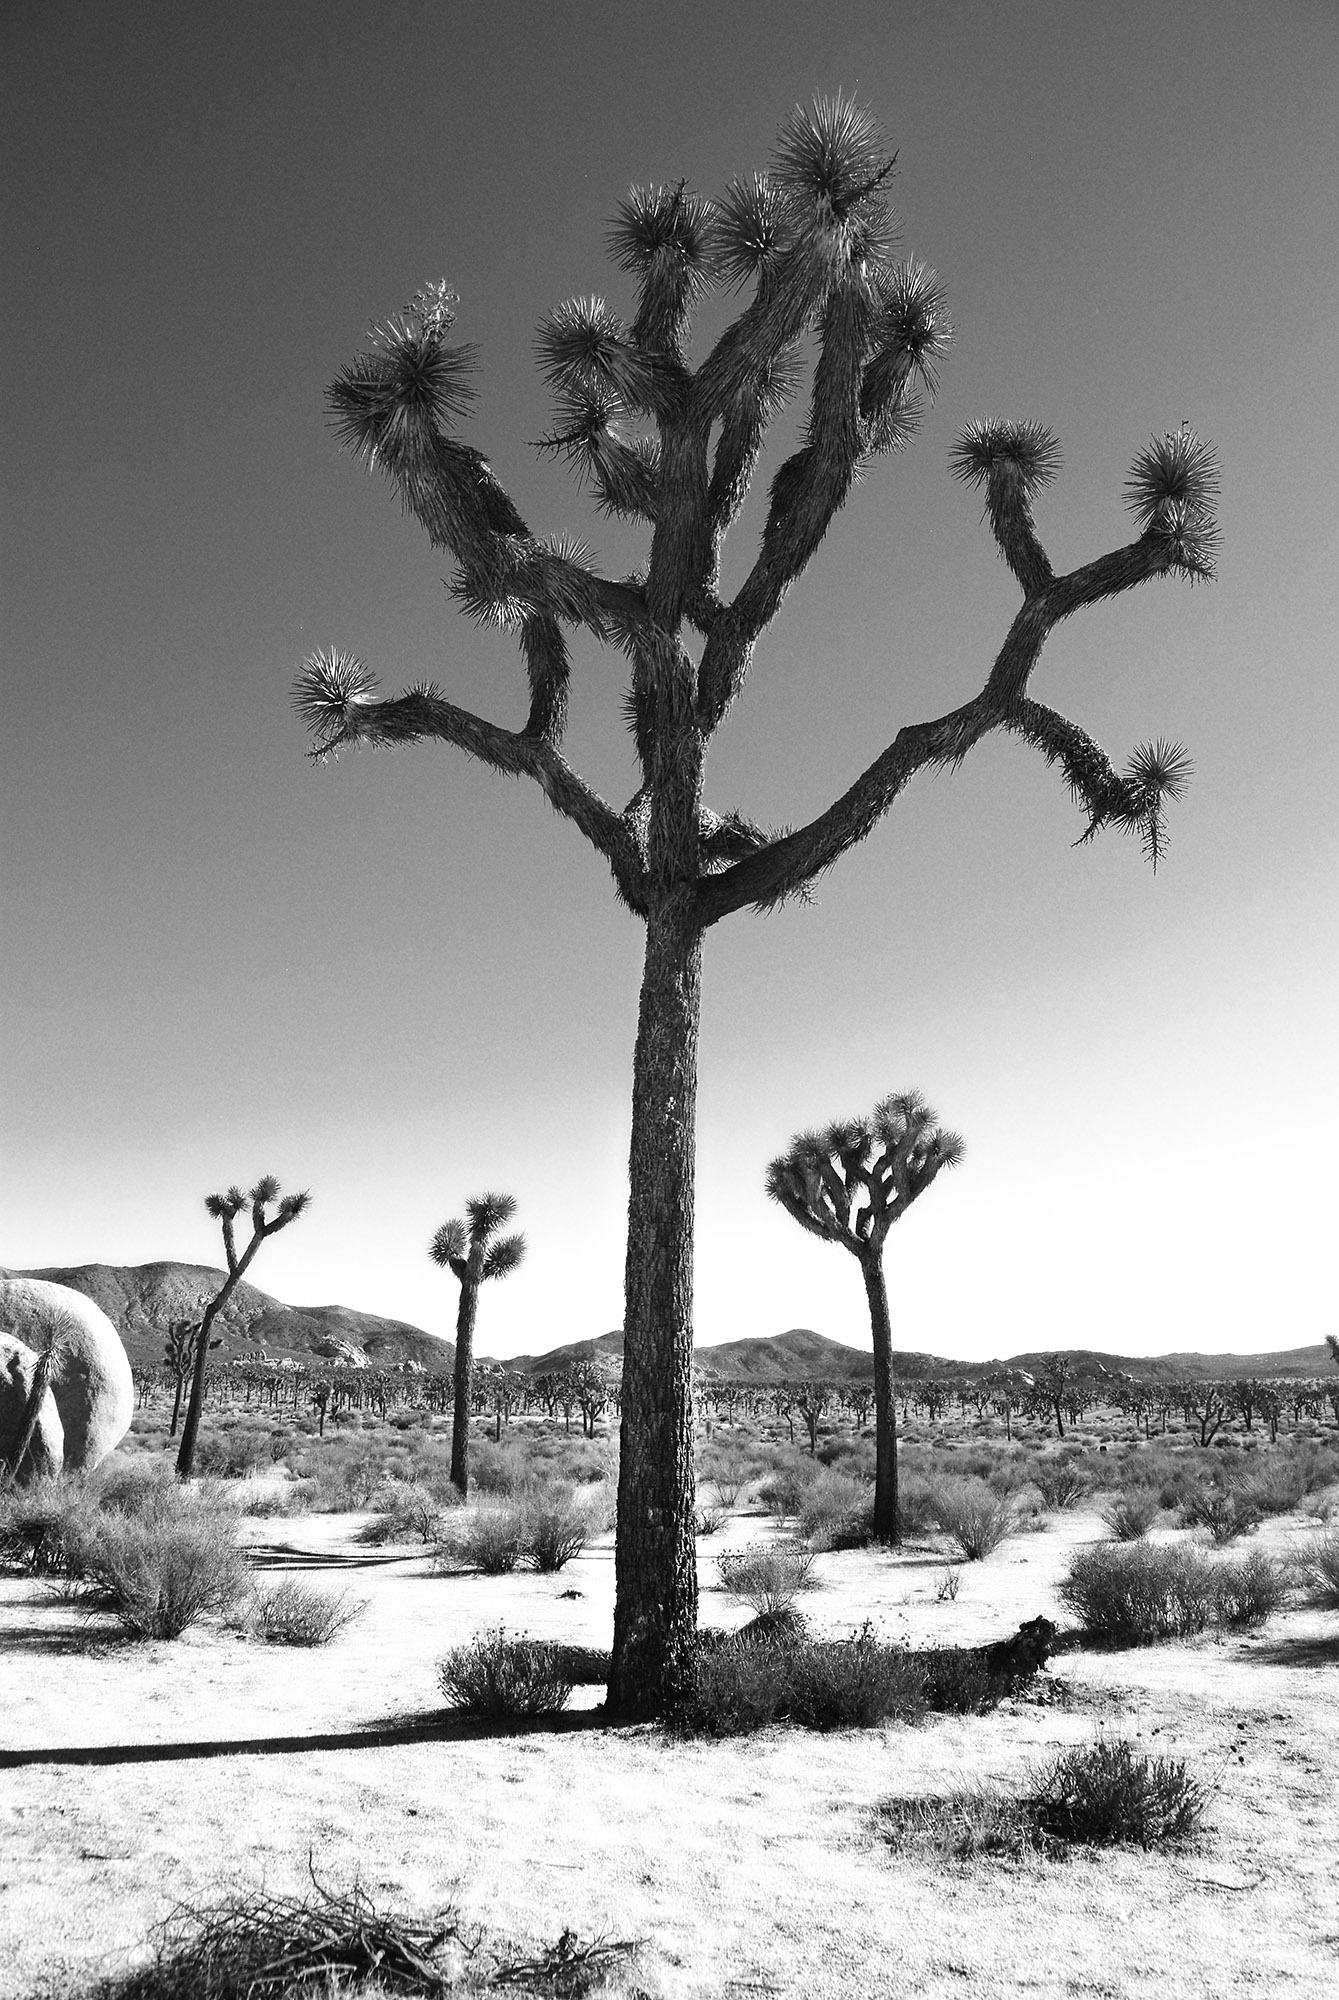 Among the Joshua Trees